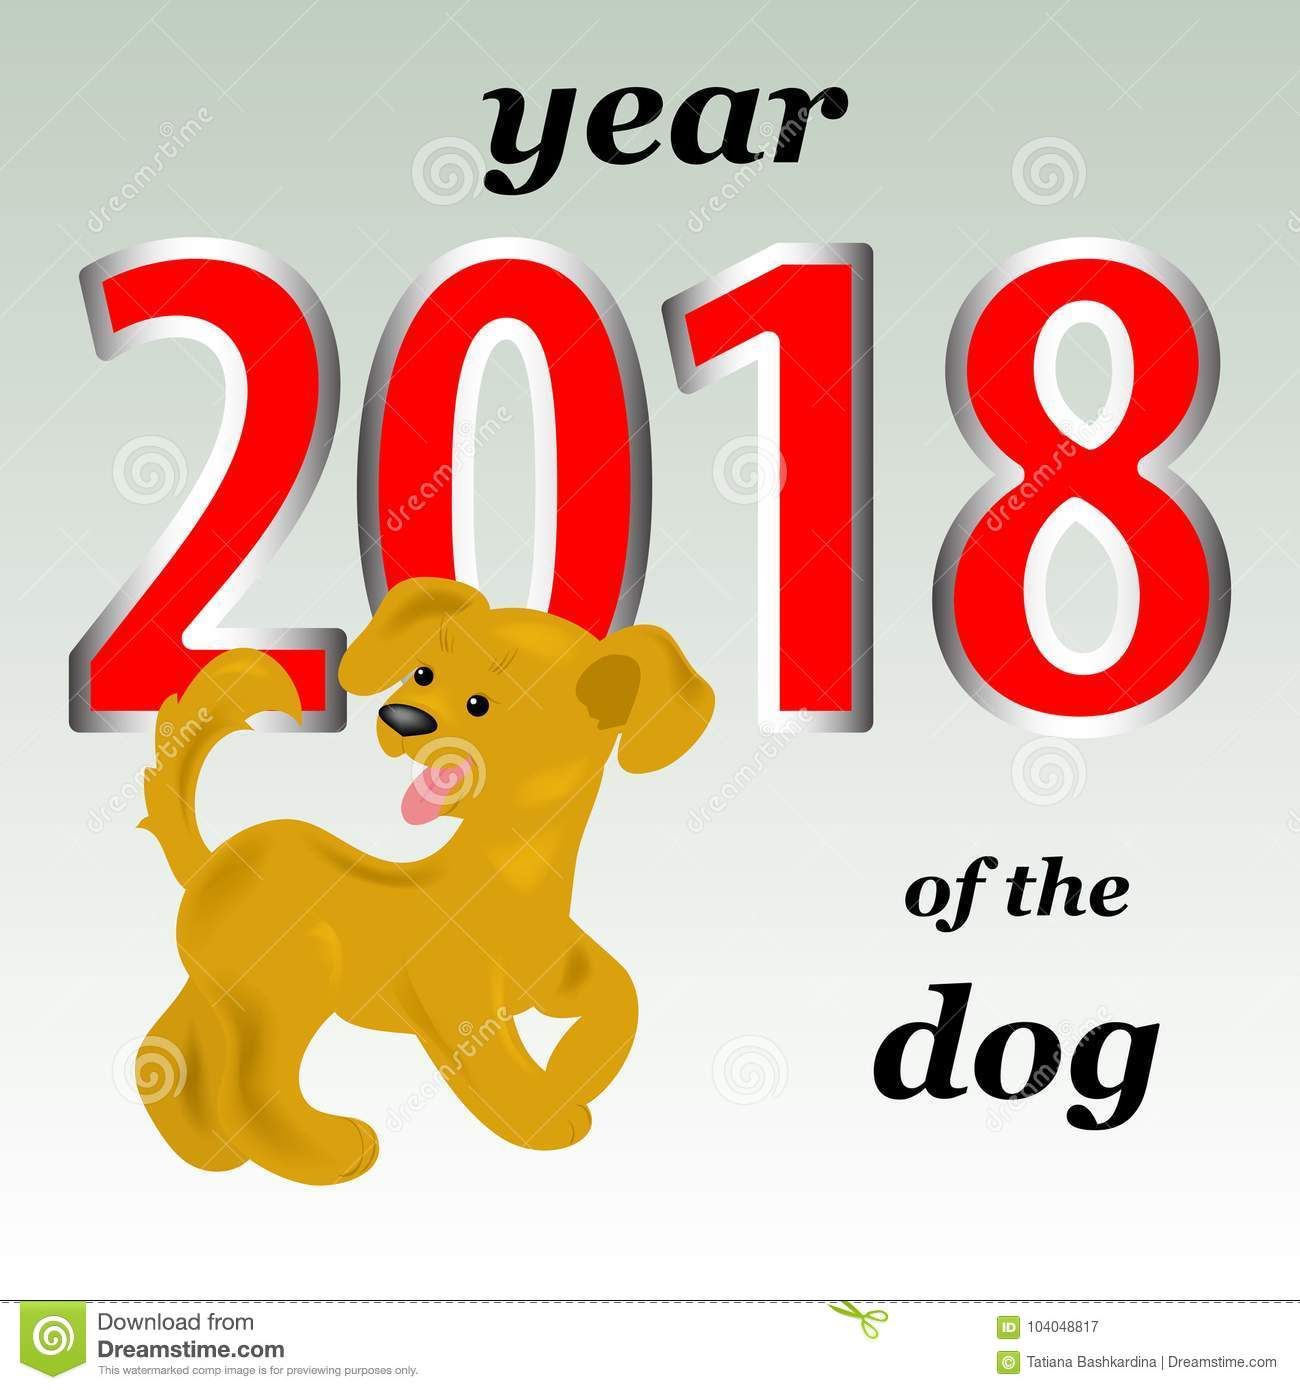 2018 year of the yellow dog in the eastern calendar. A cheerful